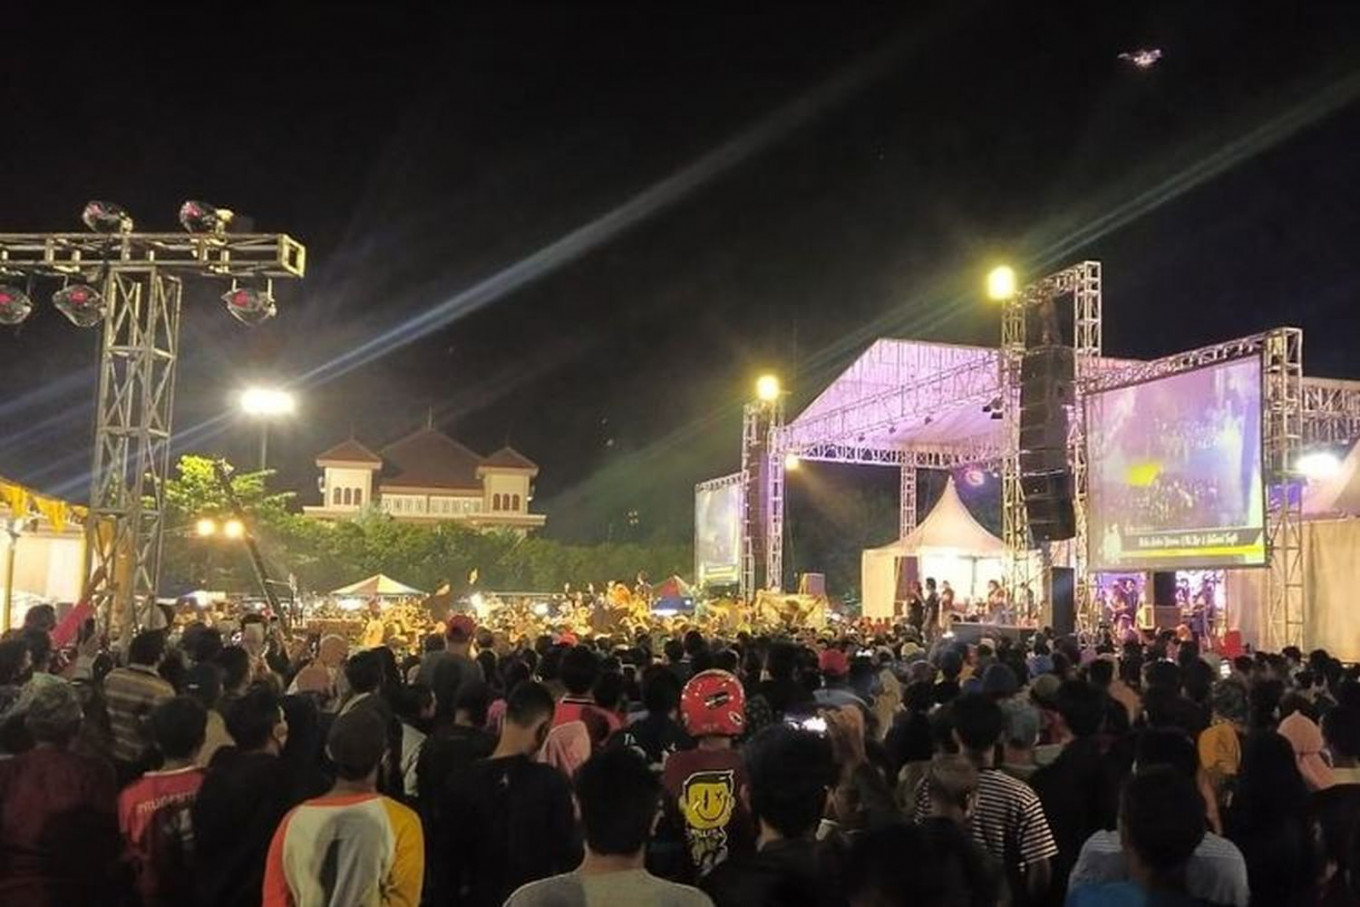 Tegal Council deputy speaker named suspect for holding crowded concert